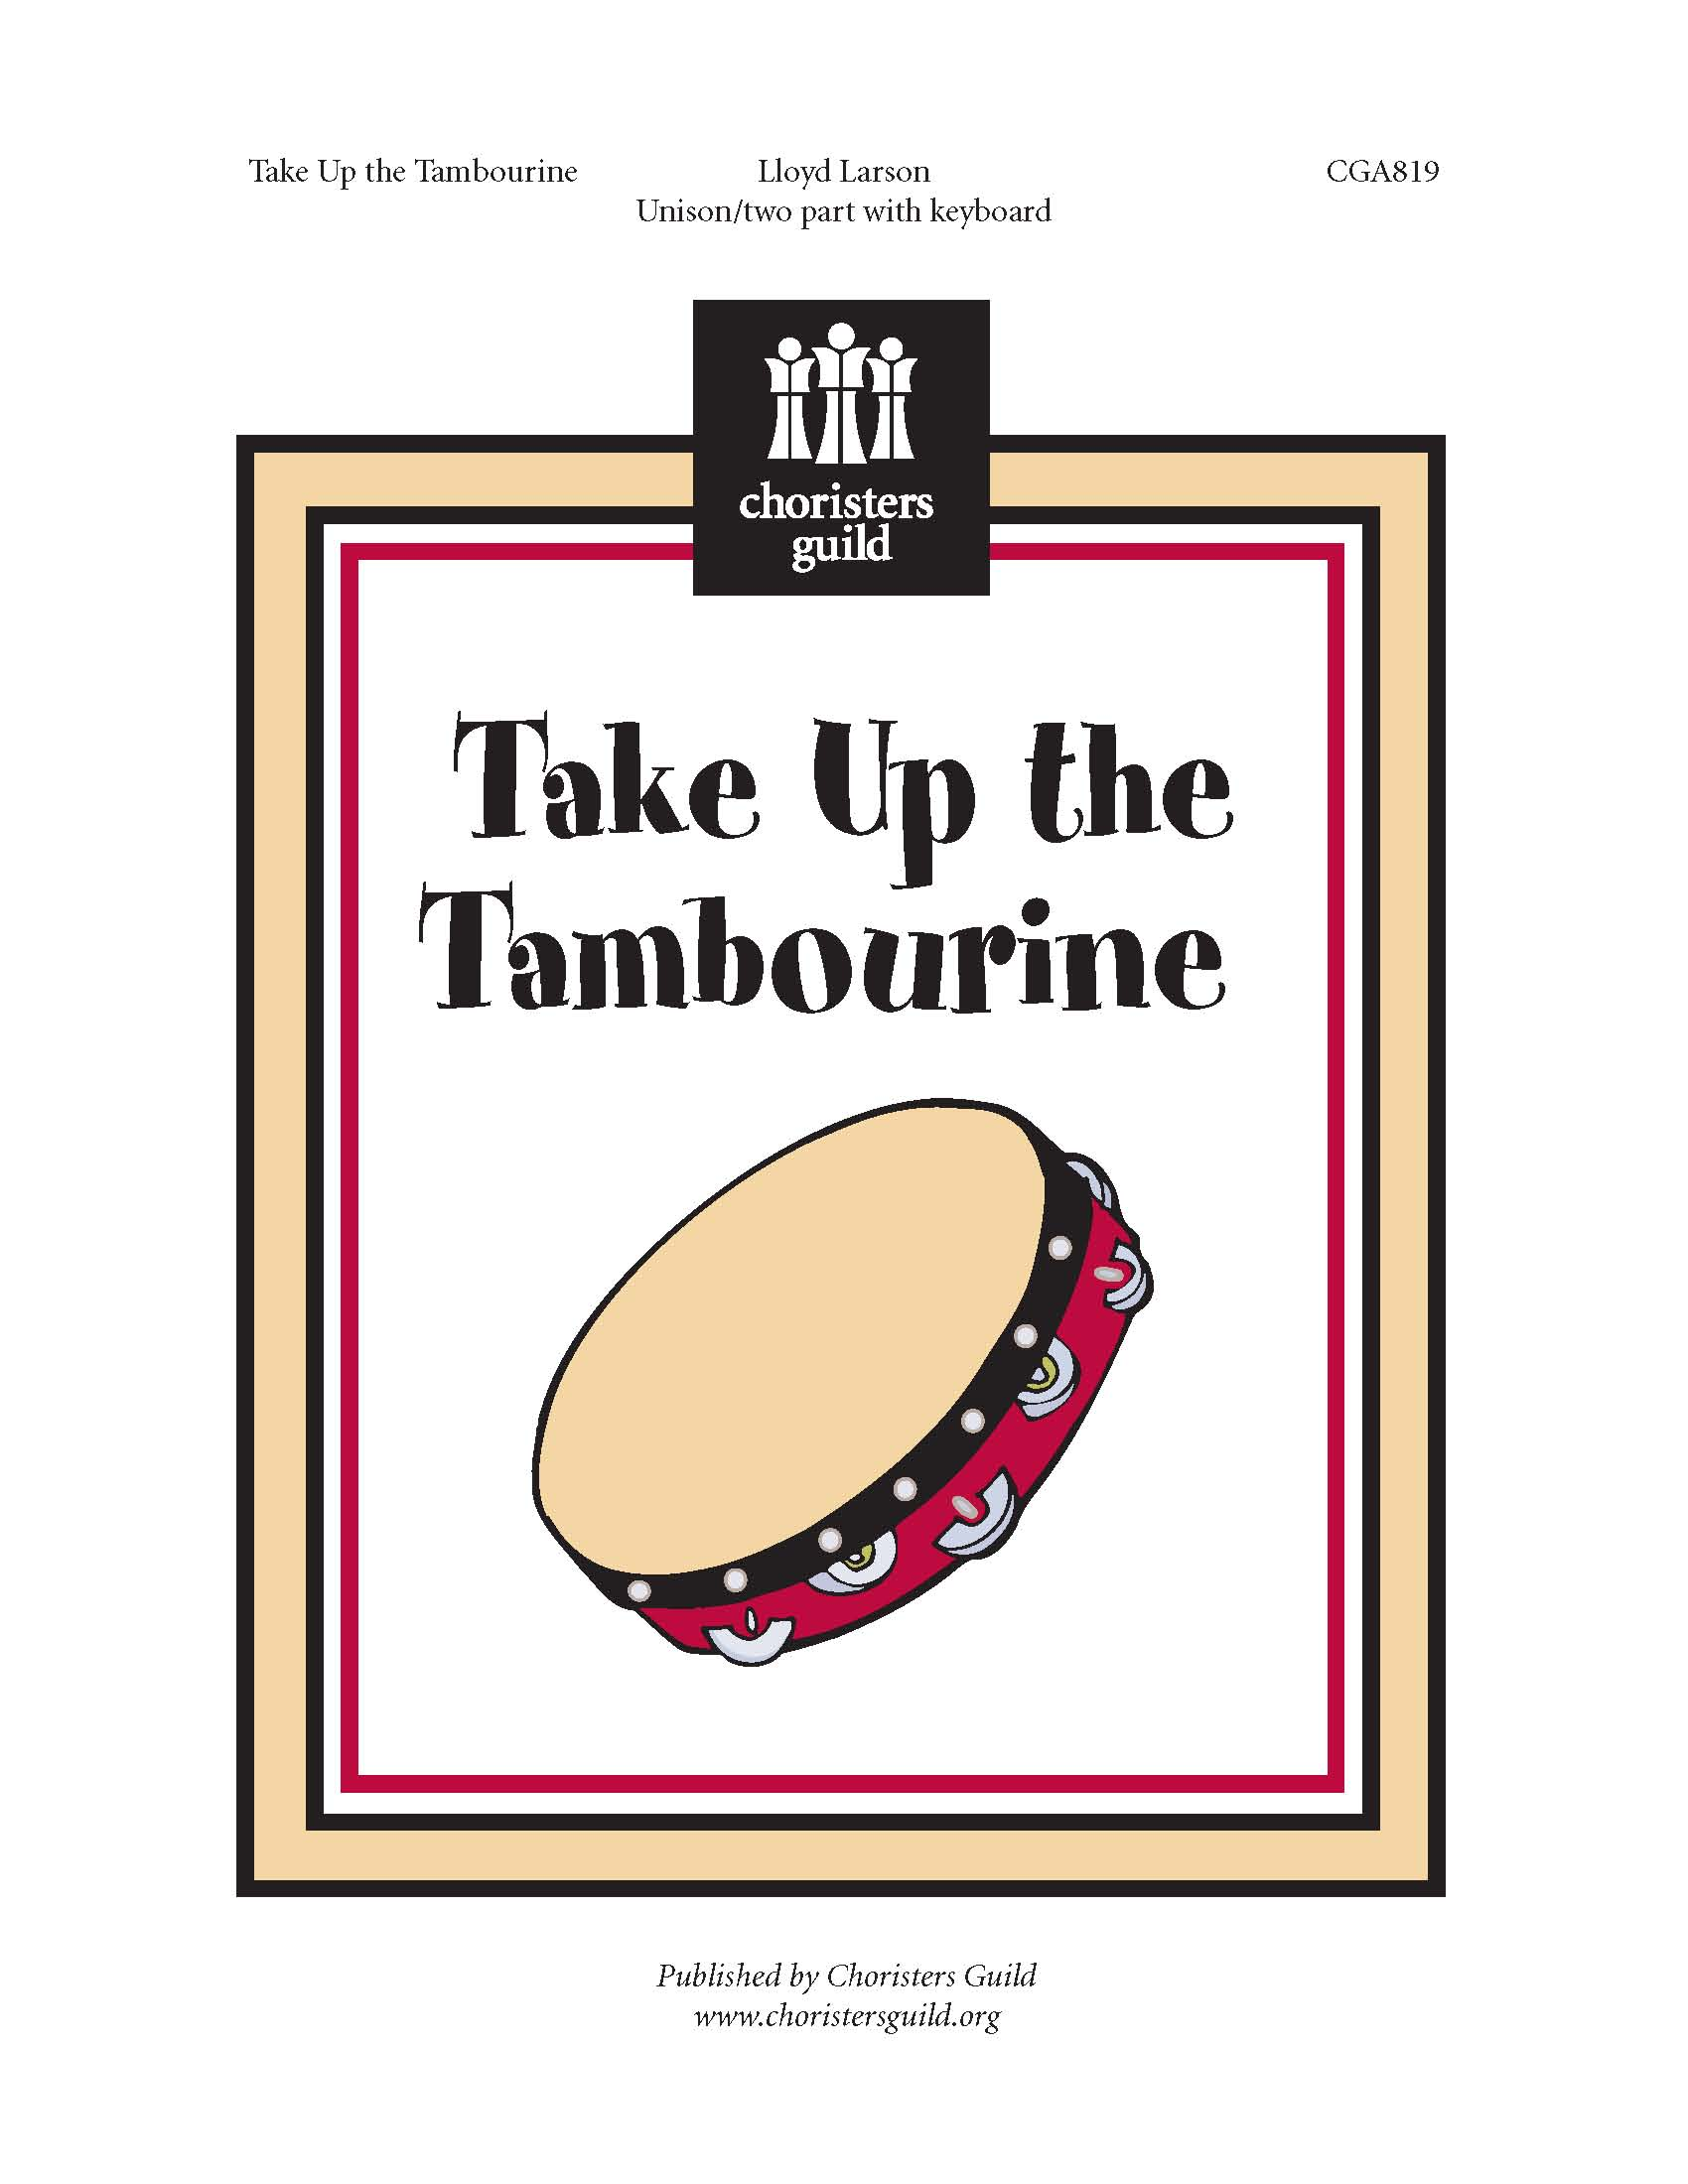 Take Up the Tambourine